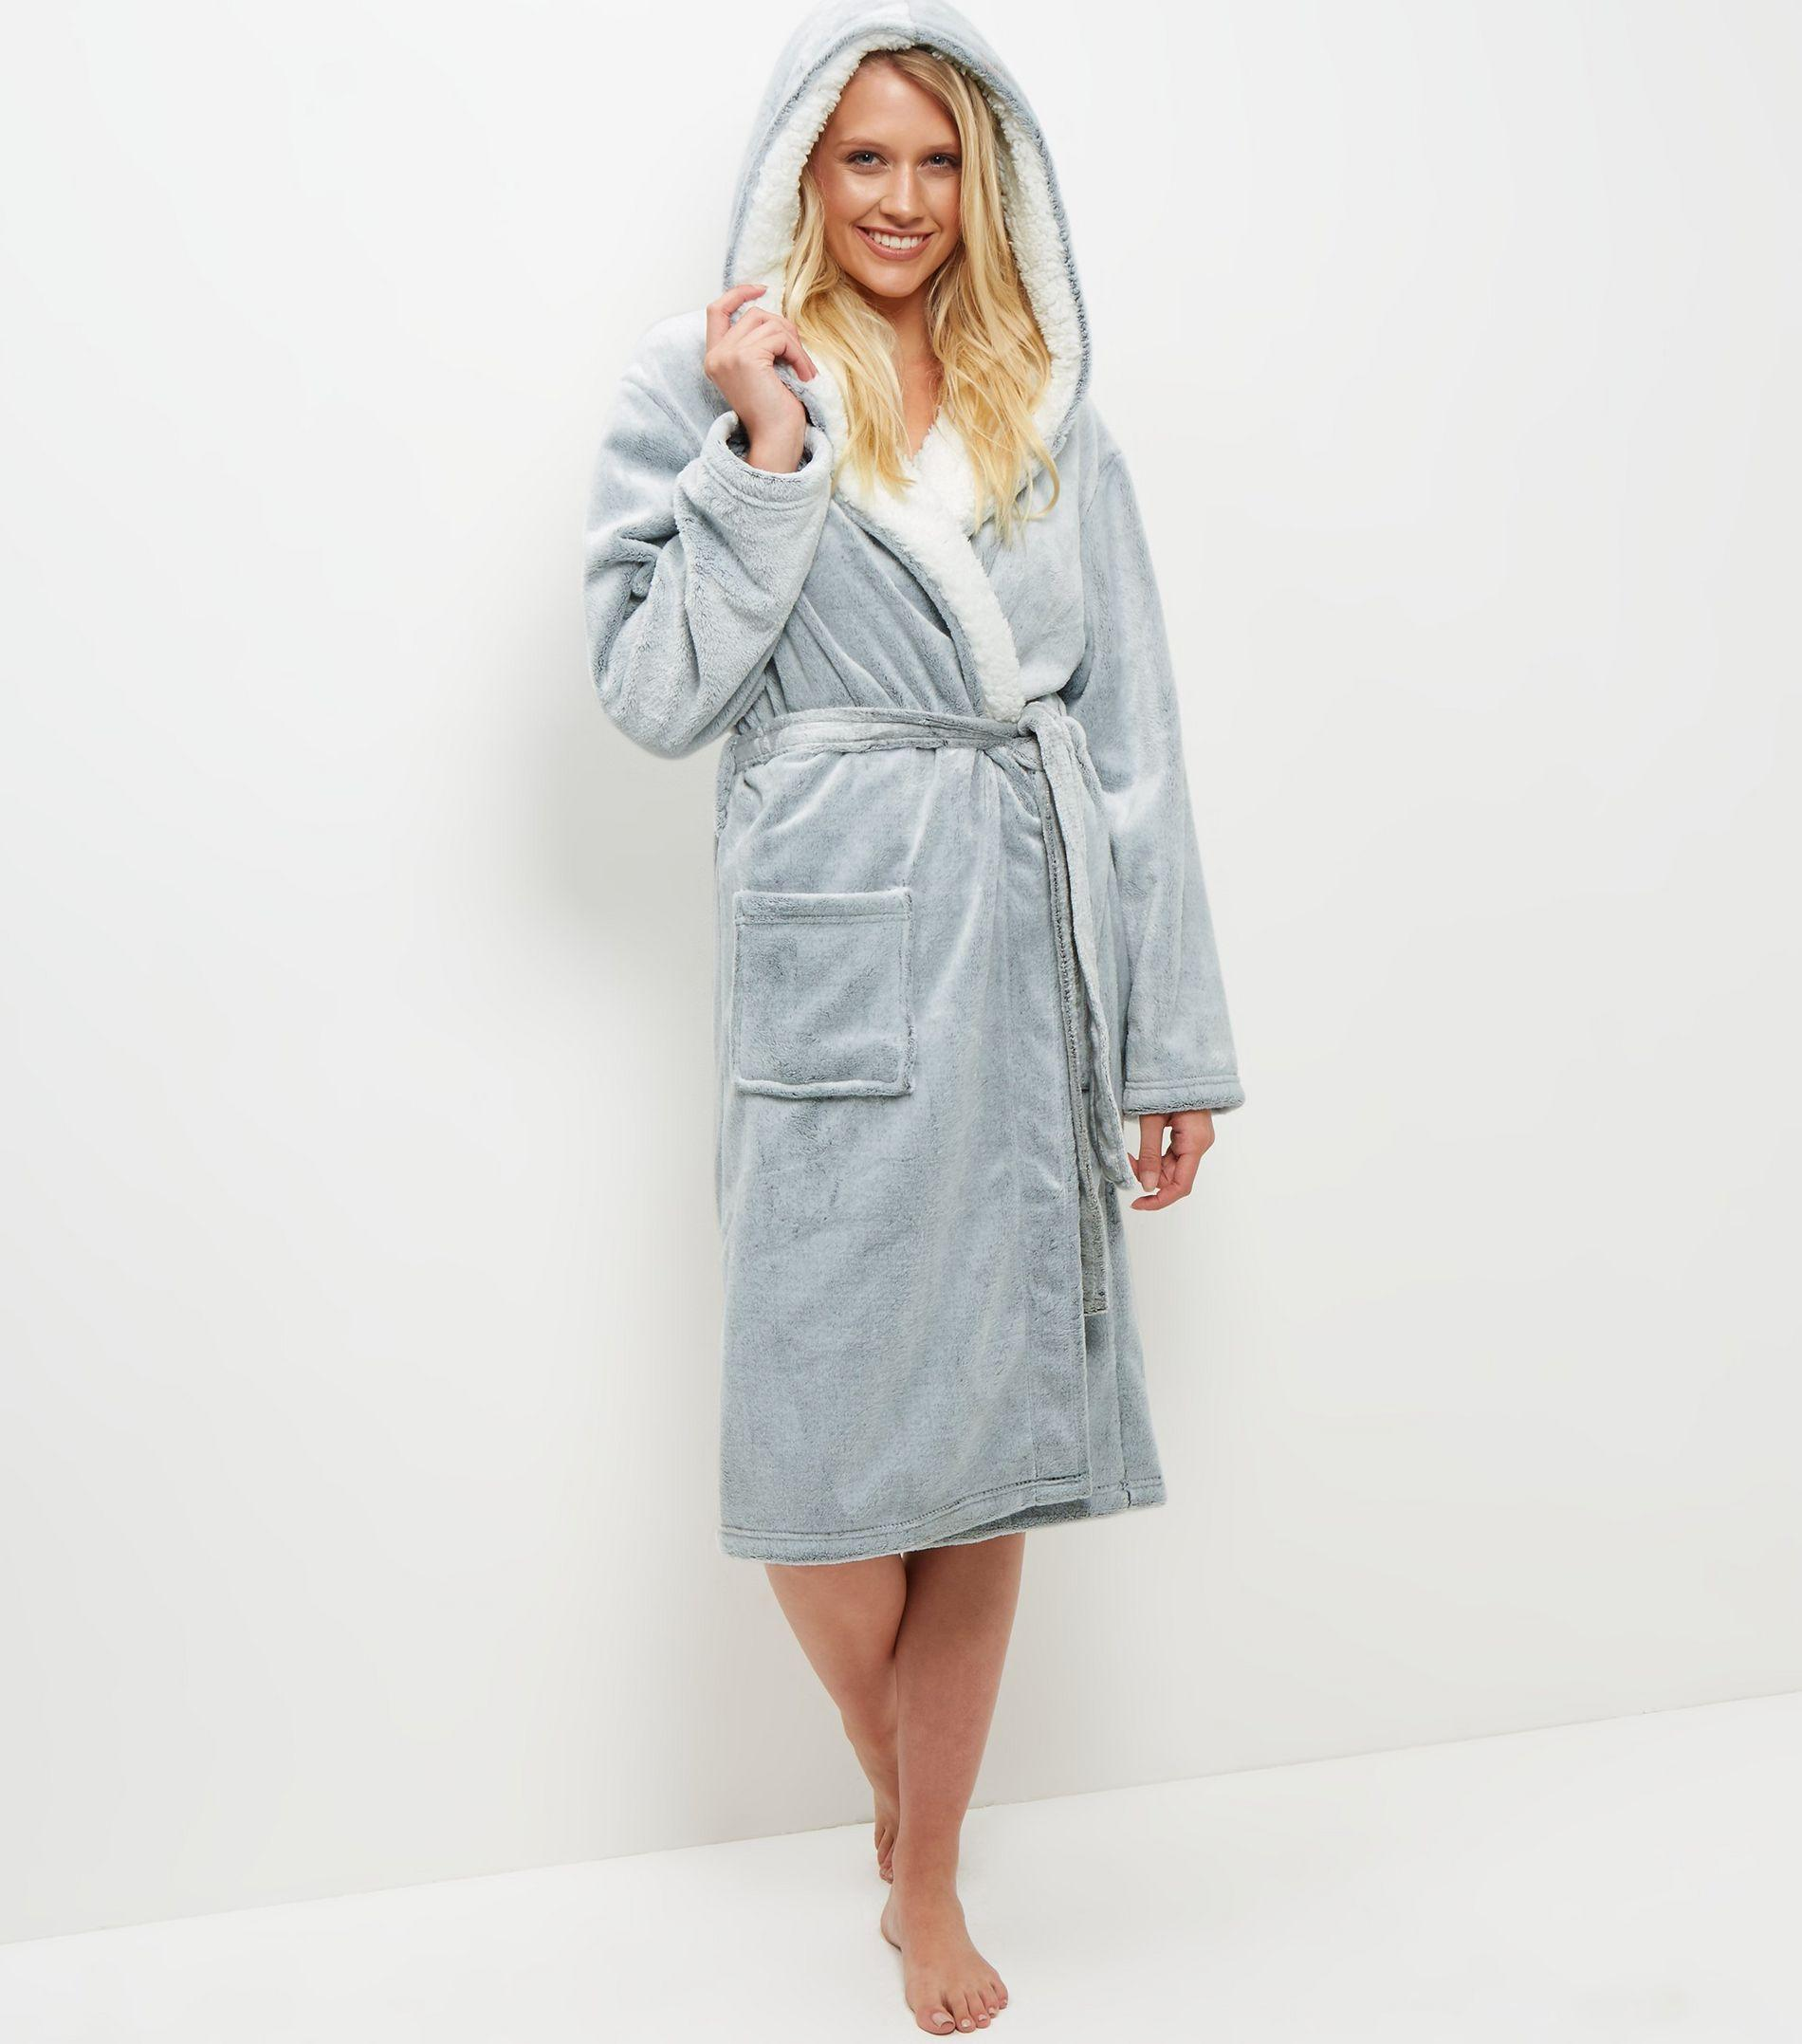 Lyst - New Look Pale Grey Borg Lined Hooded Dressing Gown in Gray